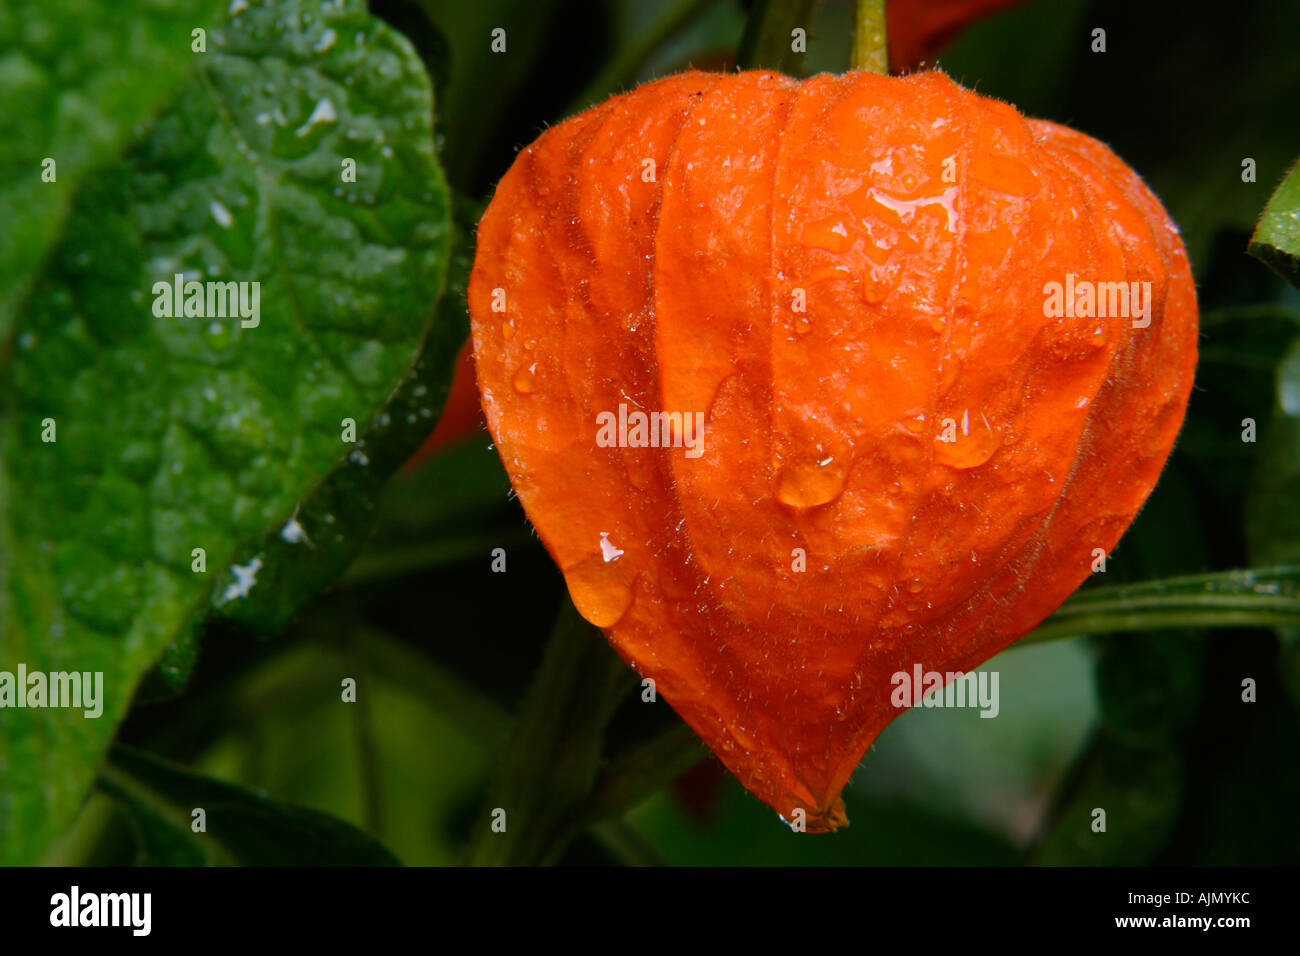 Detail of physalis alkekengi chinese lantern on vine with dew and green leaves - Stock Image